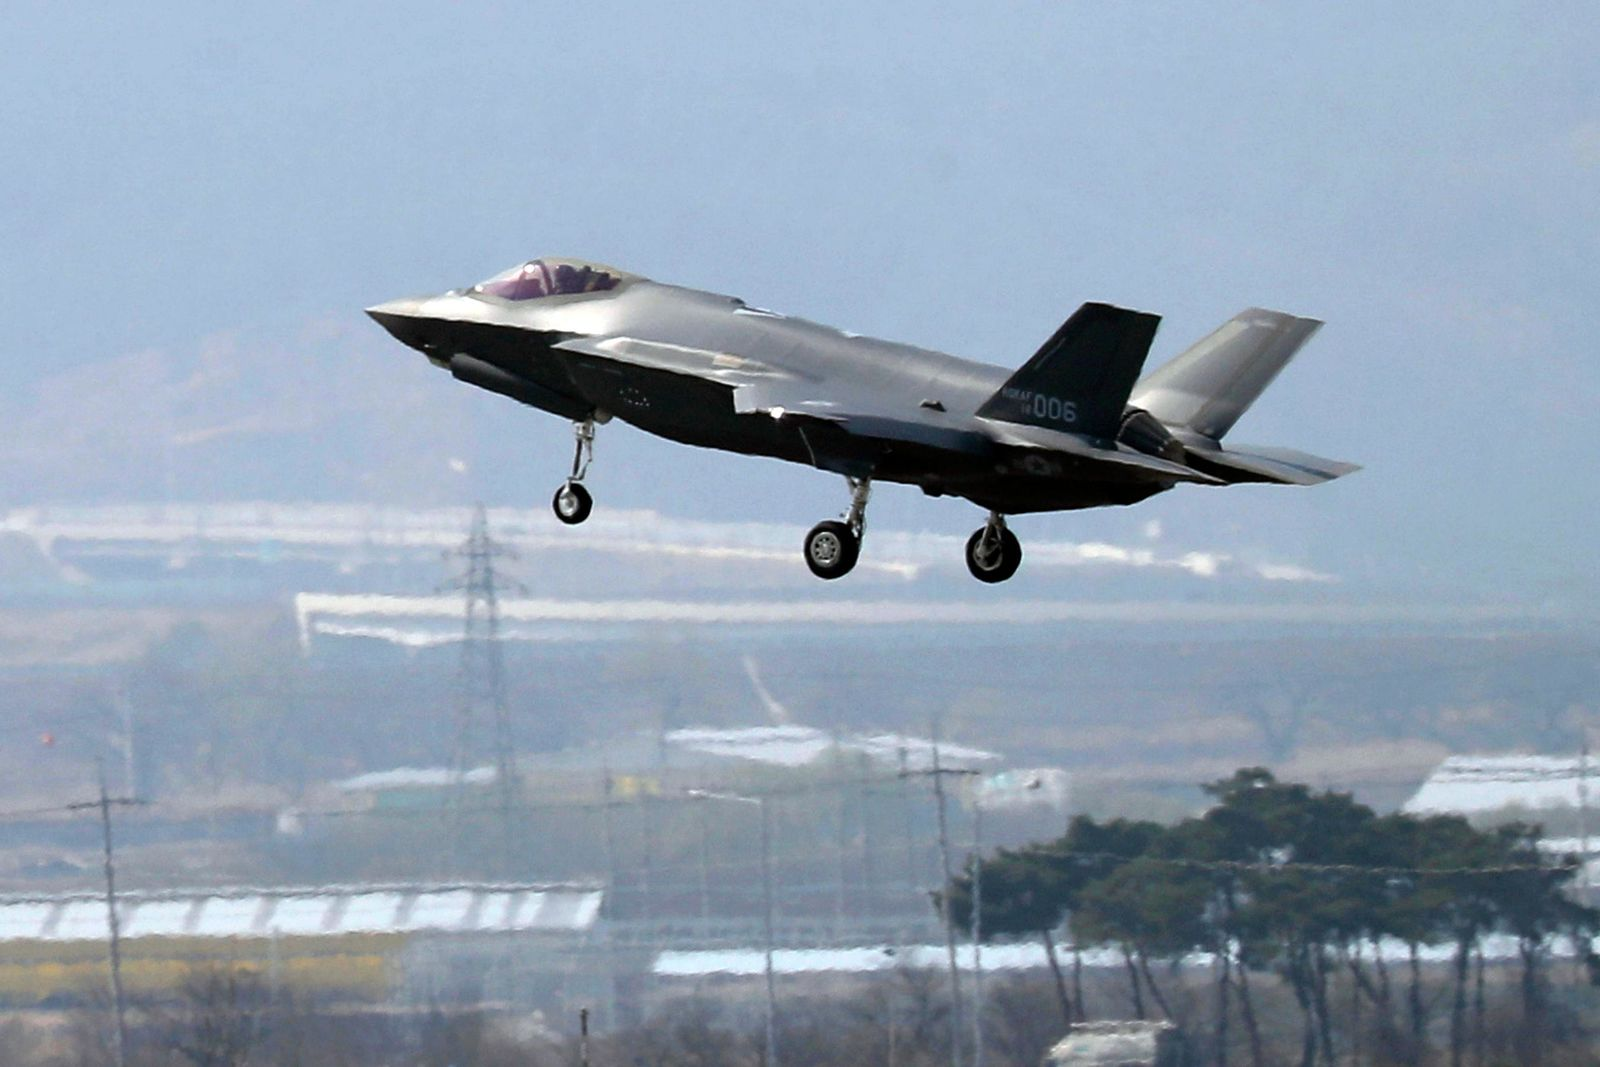 FILE - In this March 29, 2019, photo, a U.S. F-35A fighter jet prepares to land at Chungju Air Base in Chungju, South Korea. (Kang Jong-min/Newsis via AP)